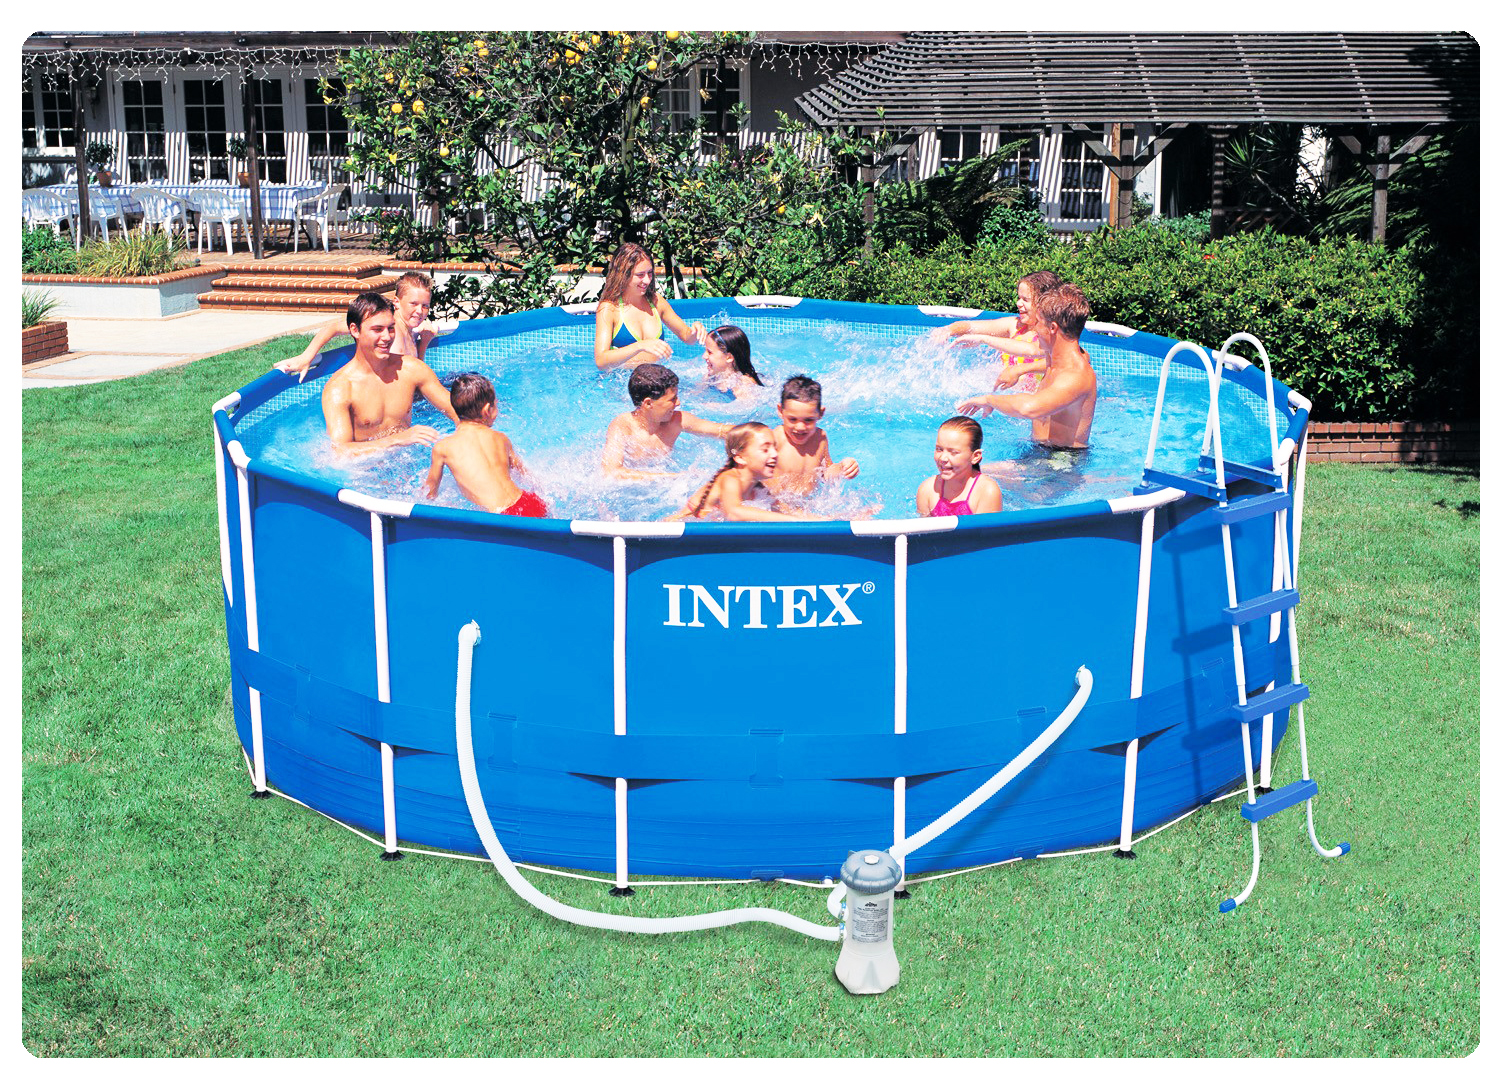 Intex Piscinas Acessorios Piscinas Easy Set Piscinas Intex